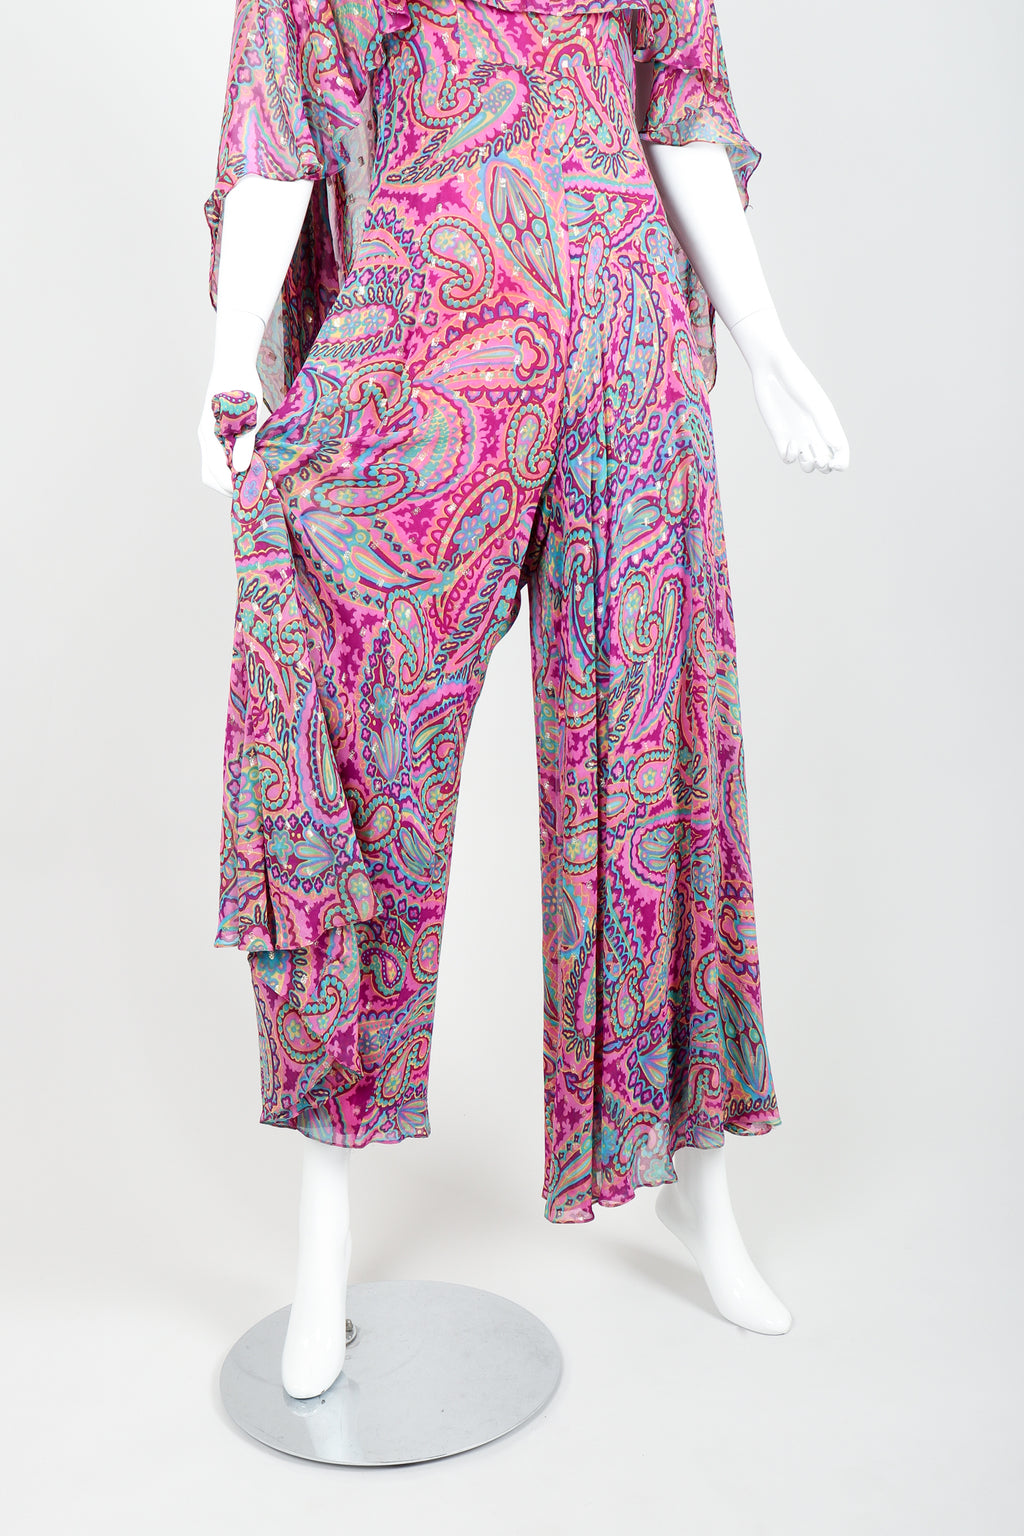 Vintage Oscar de la Renta Paisley Silk Cape Jumpsuit on mannequin legs at Recess Los Angeles